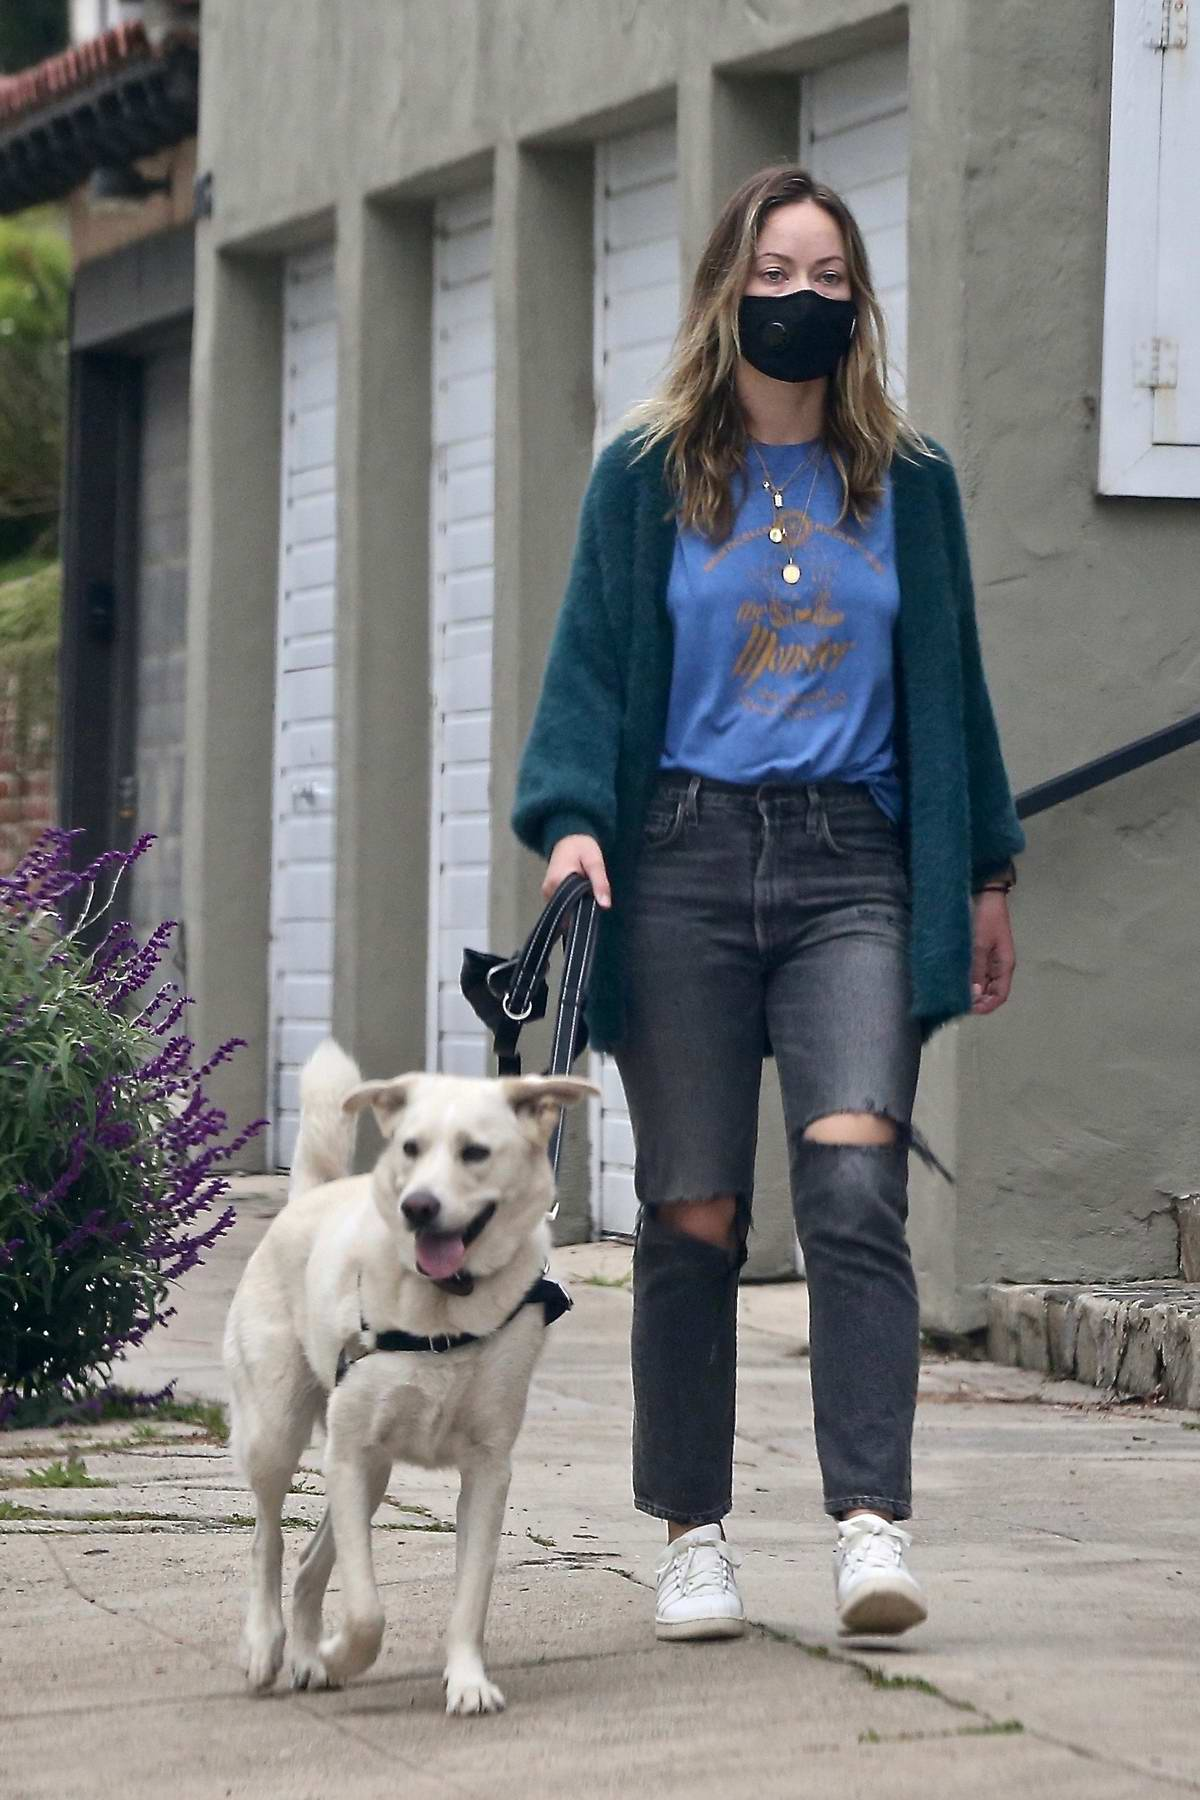 Olivia Wilde enjoys a nice stroll with her daughter while walking her dog in Los Angeles